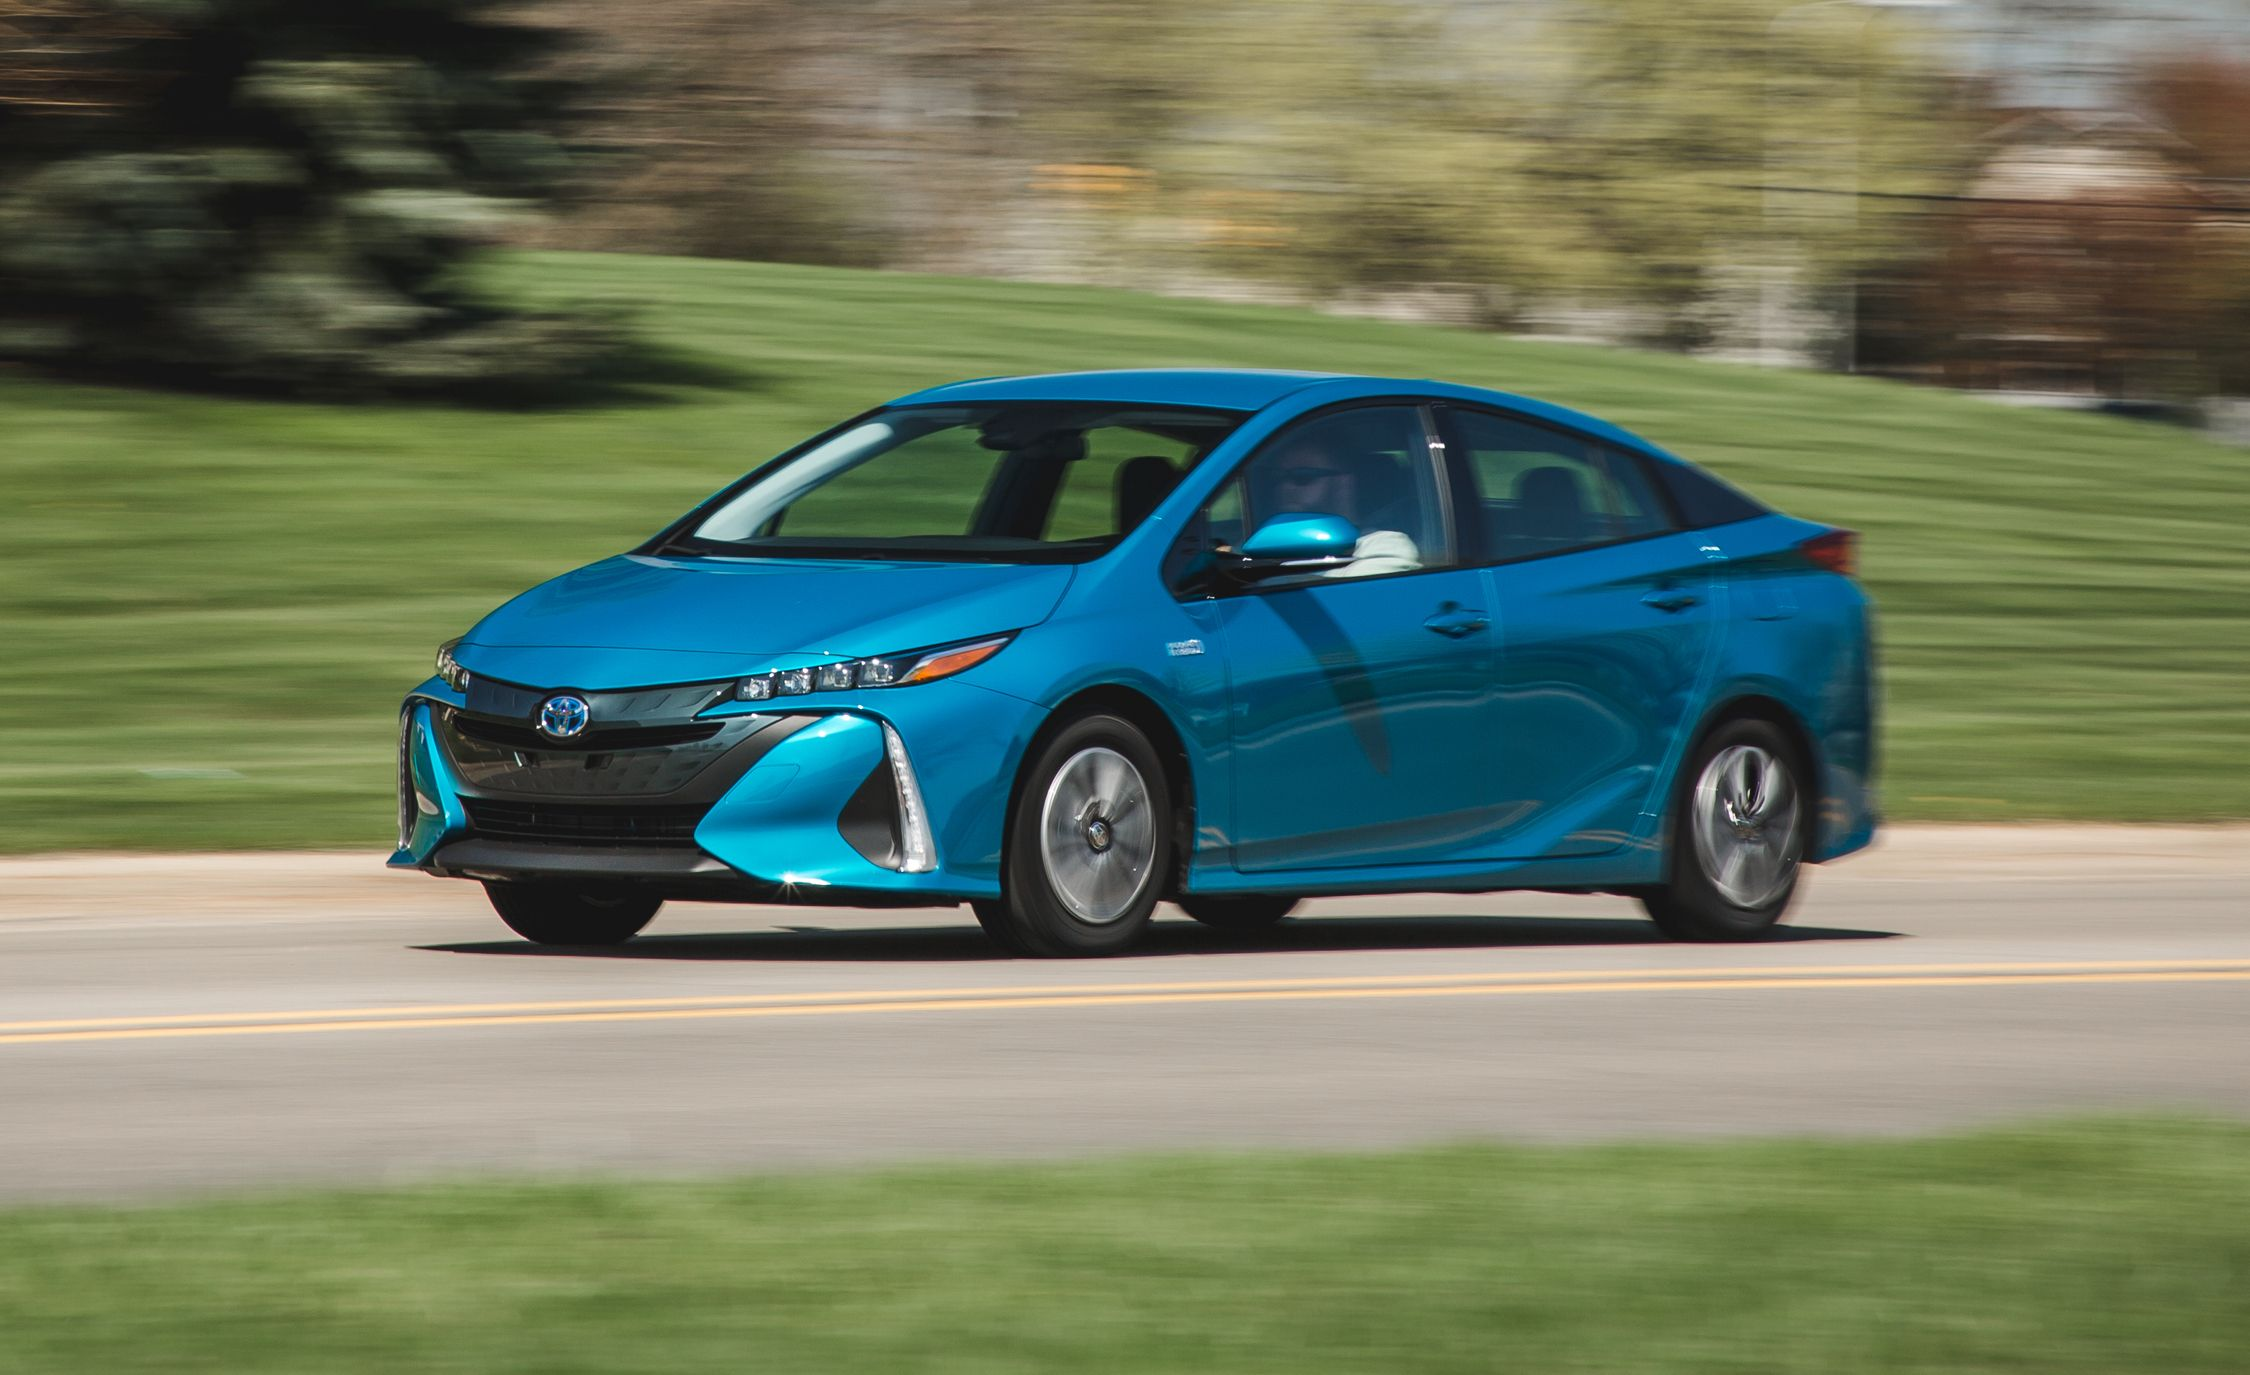 2019 toyota prius prime reviews toyota prius prime price. Black Bedroom Furniture Sets. Home Design Ideas